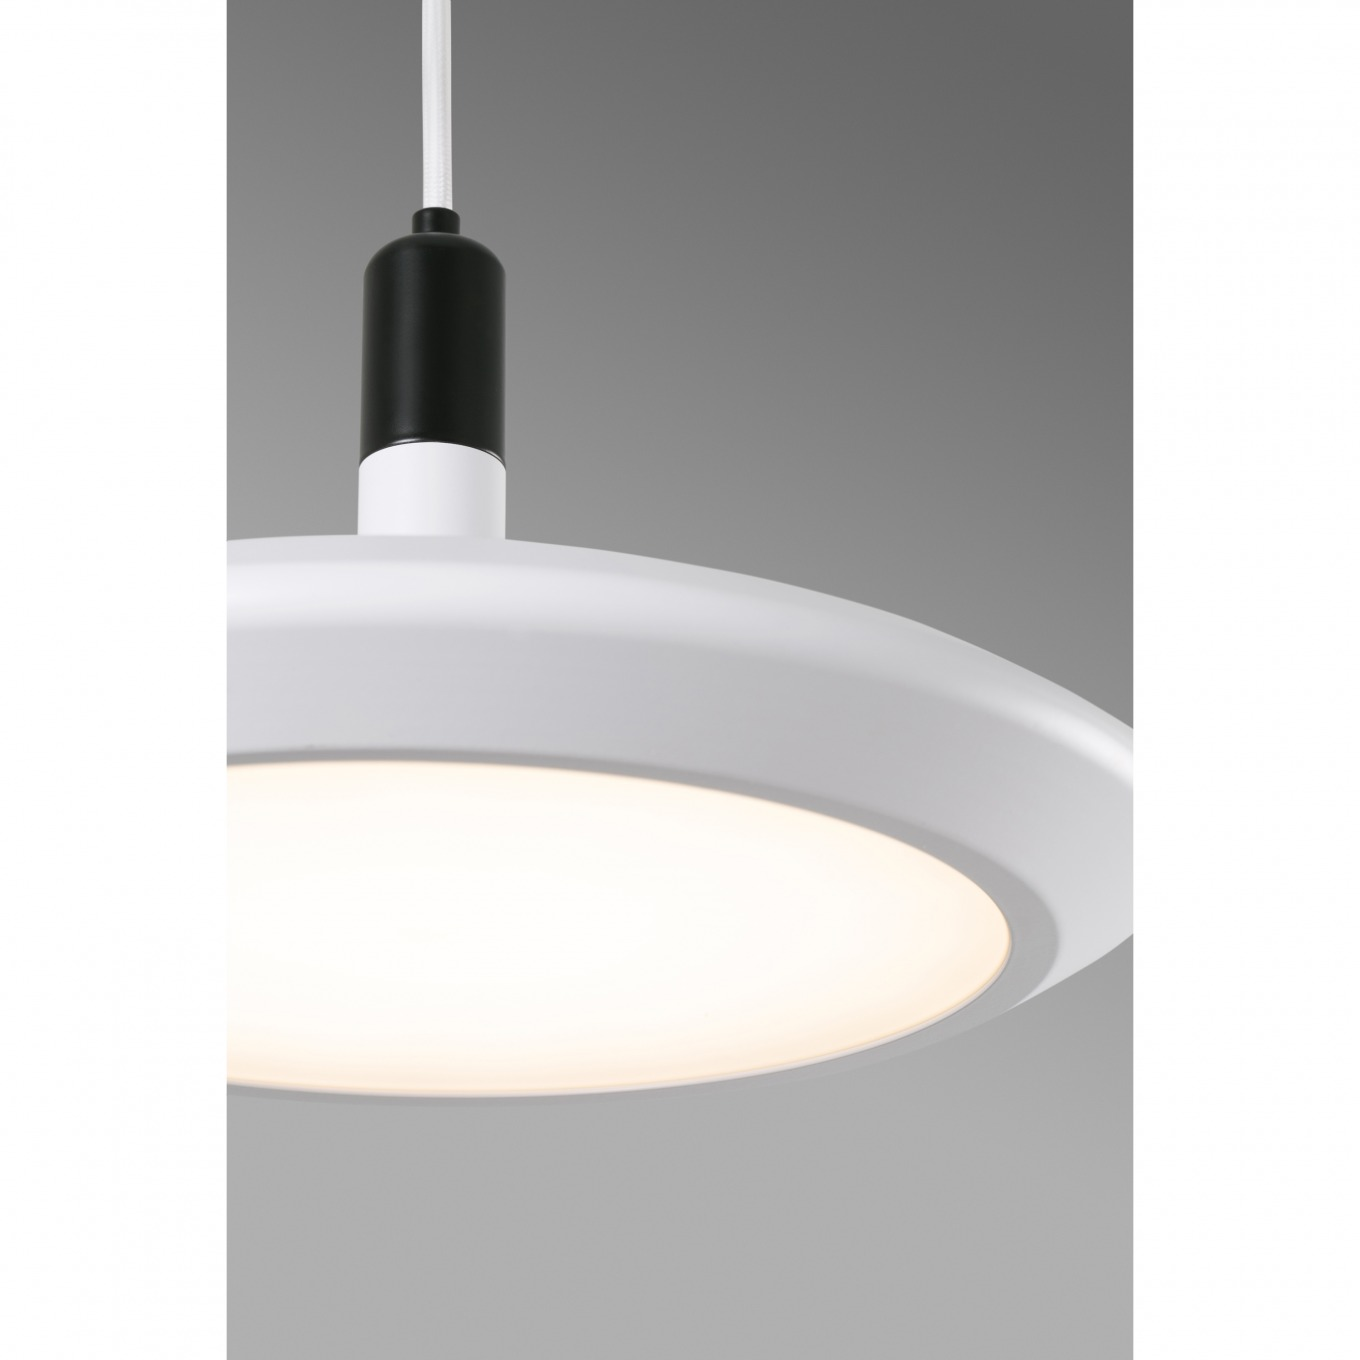 hanglamp-design-rond-wit